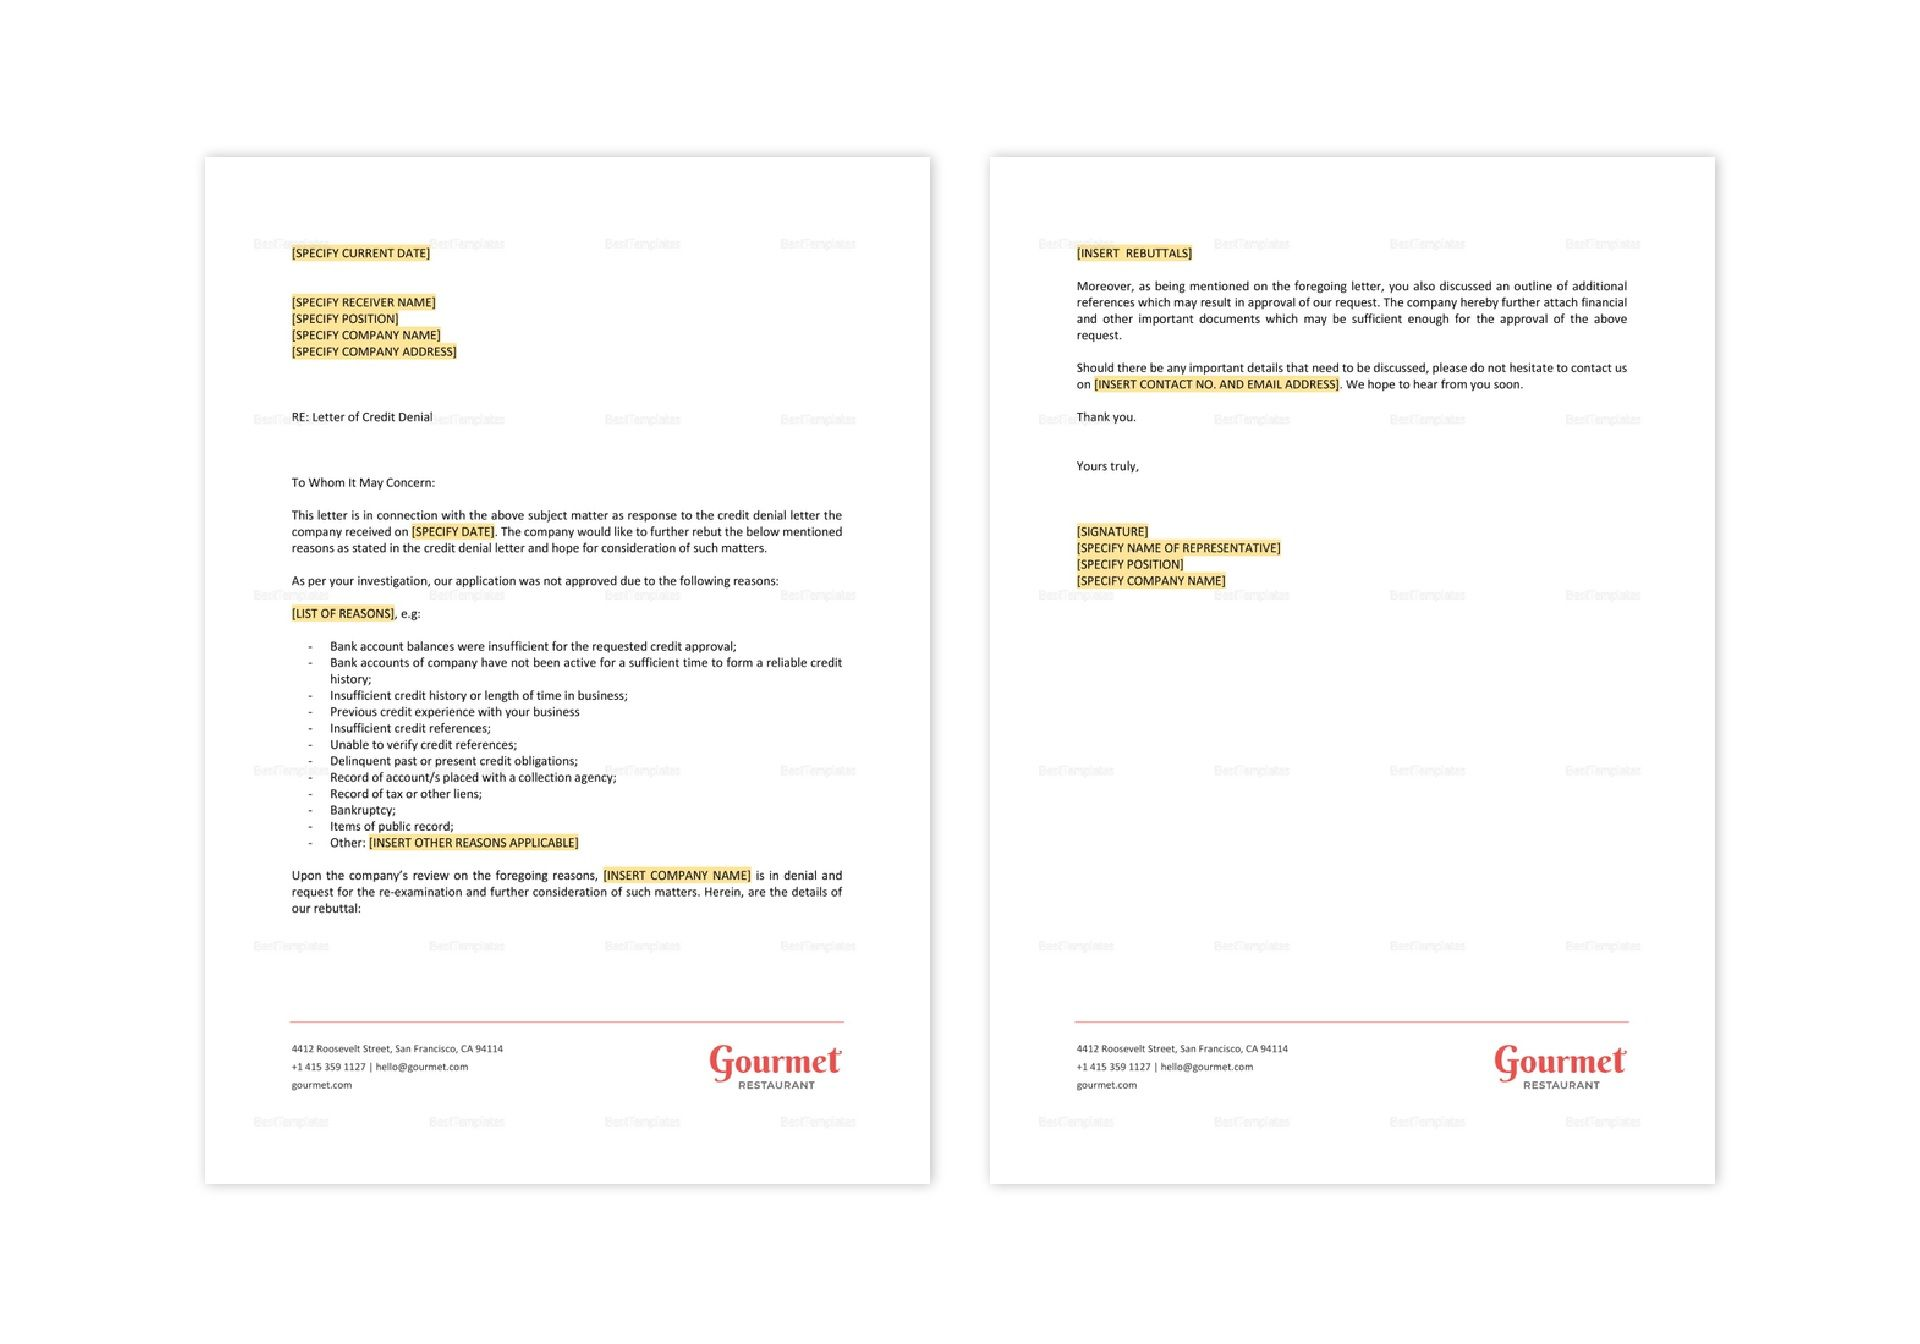 Restaurant Letter Challenging a Credit Denial Template in